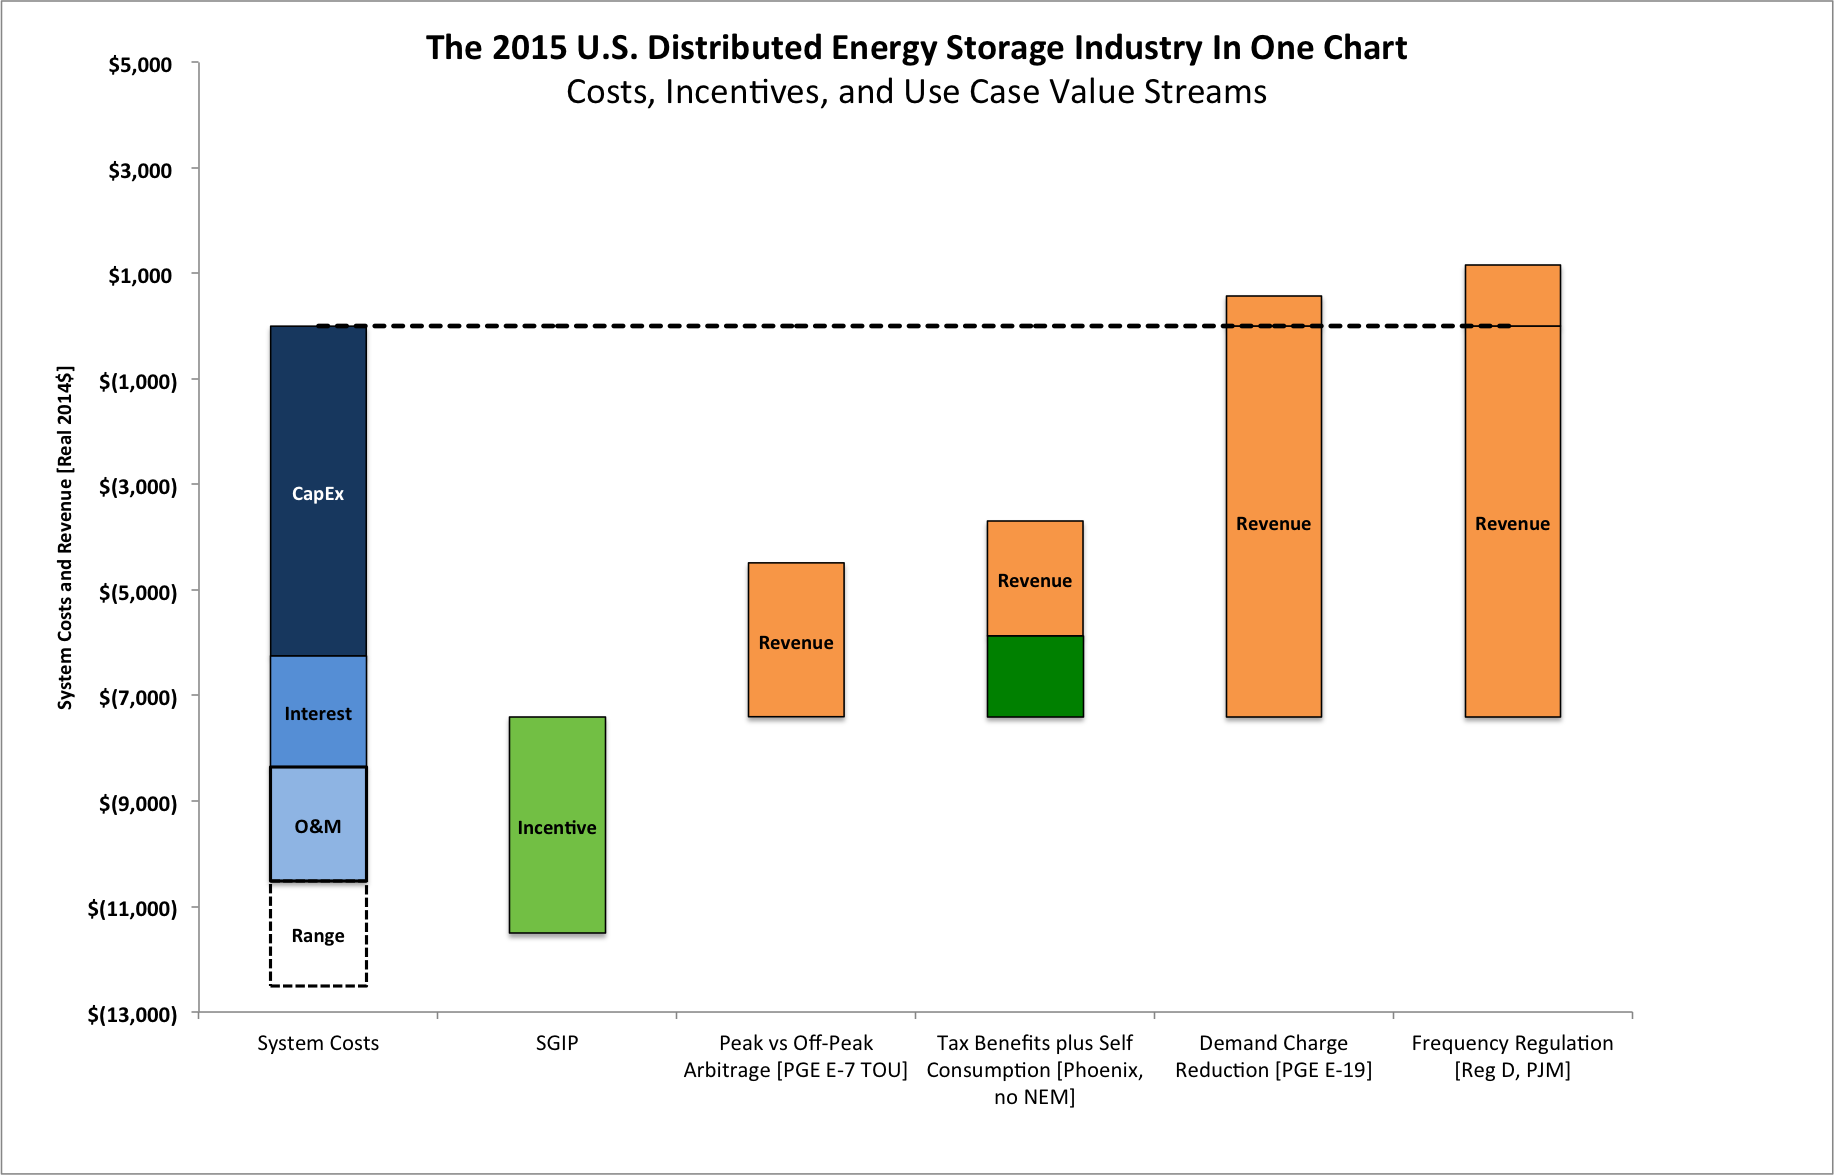 Costs, incentives, and case value streams of distributed energy in the U.S. in 2015